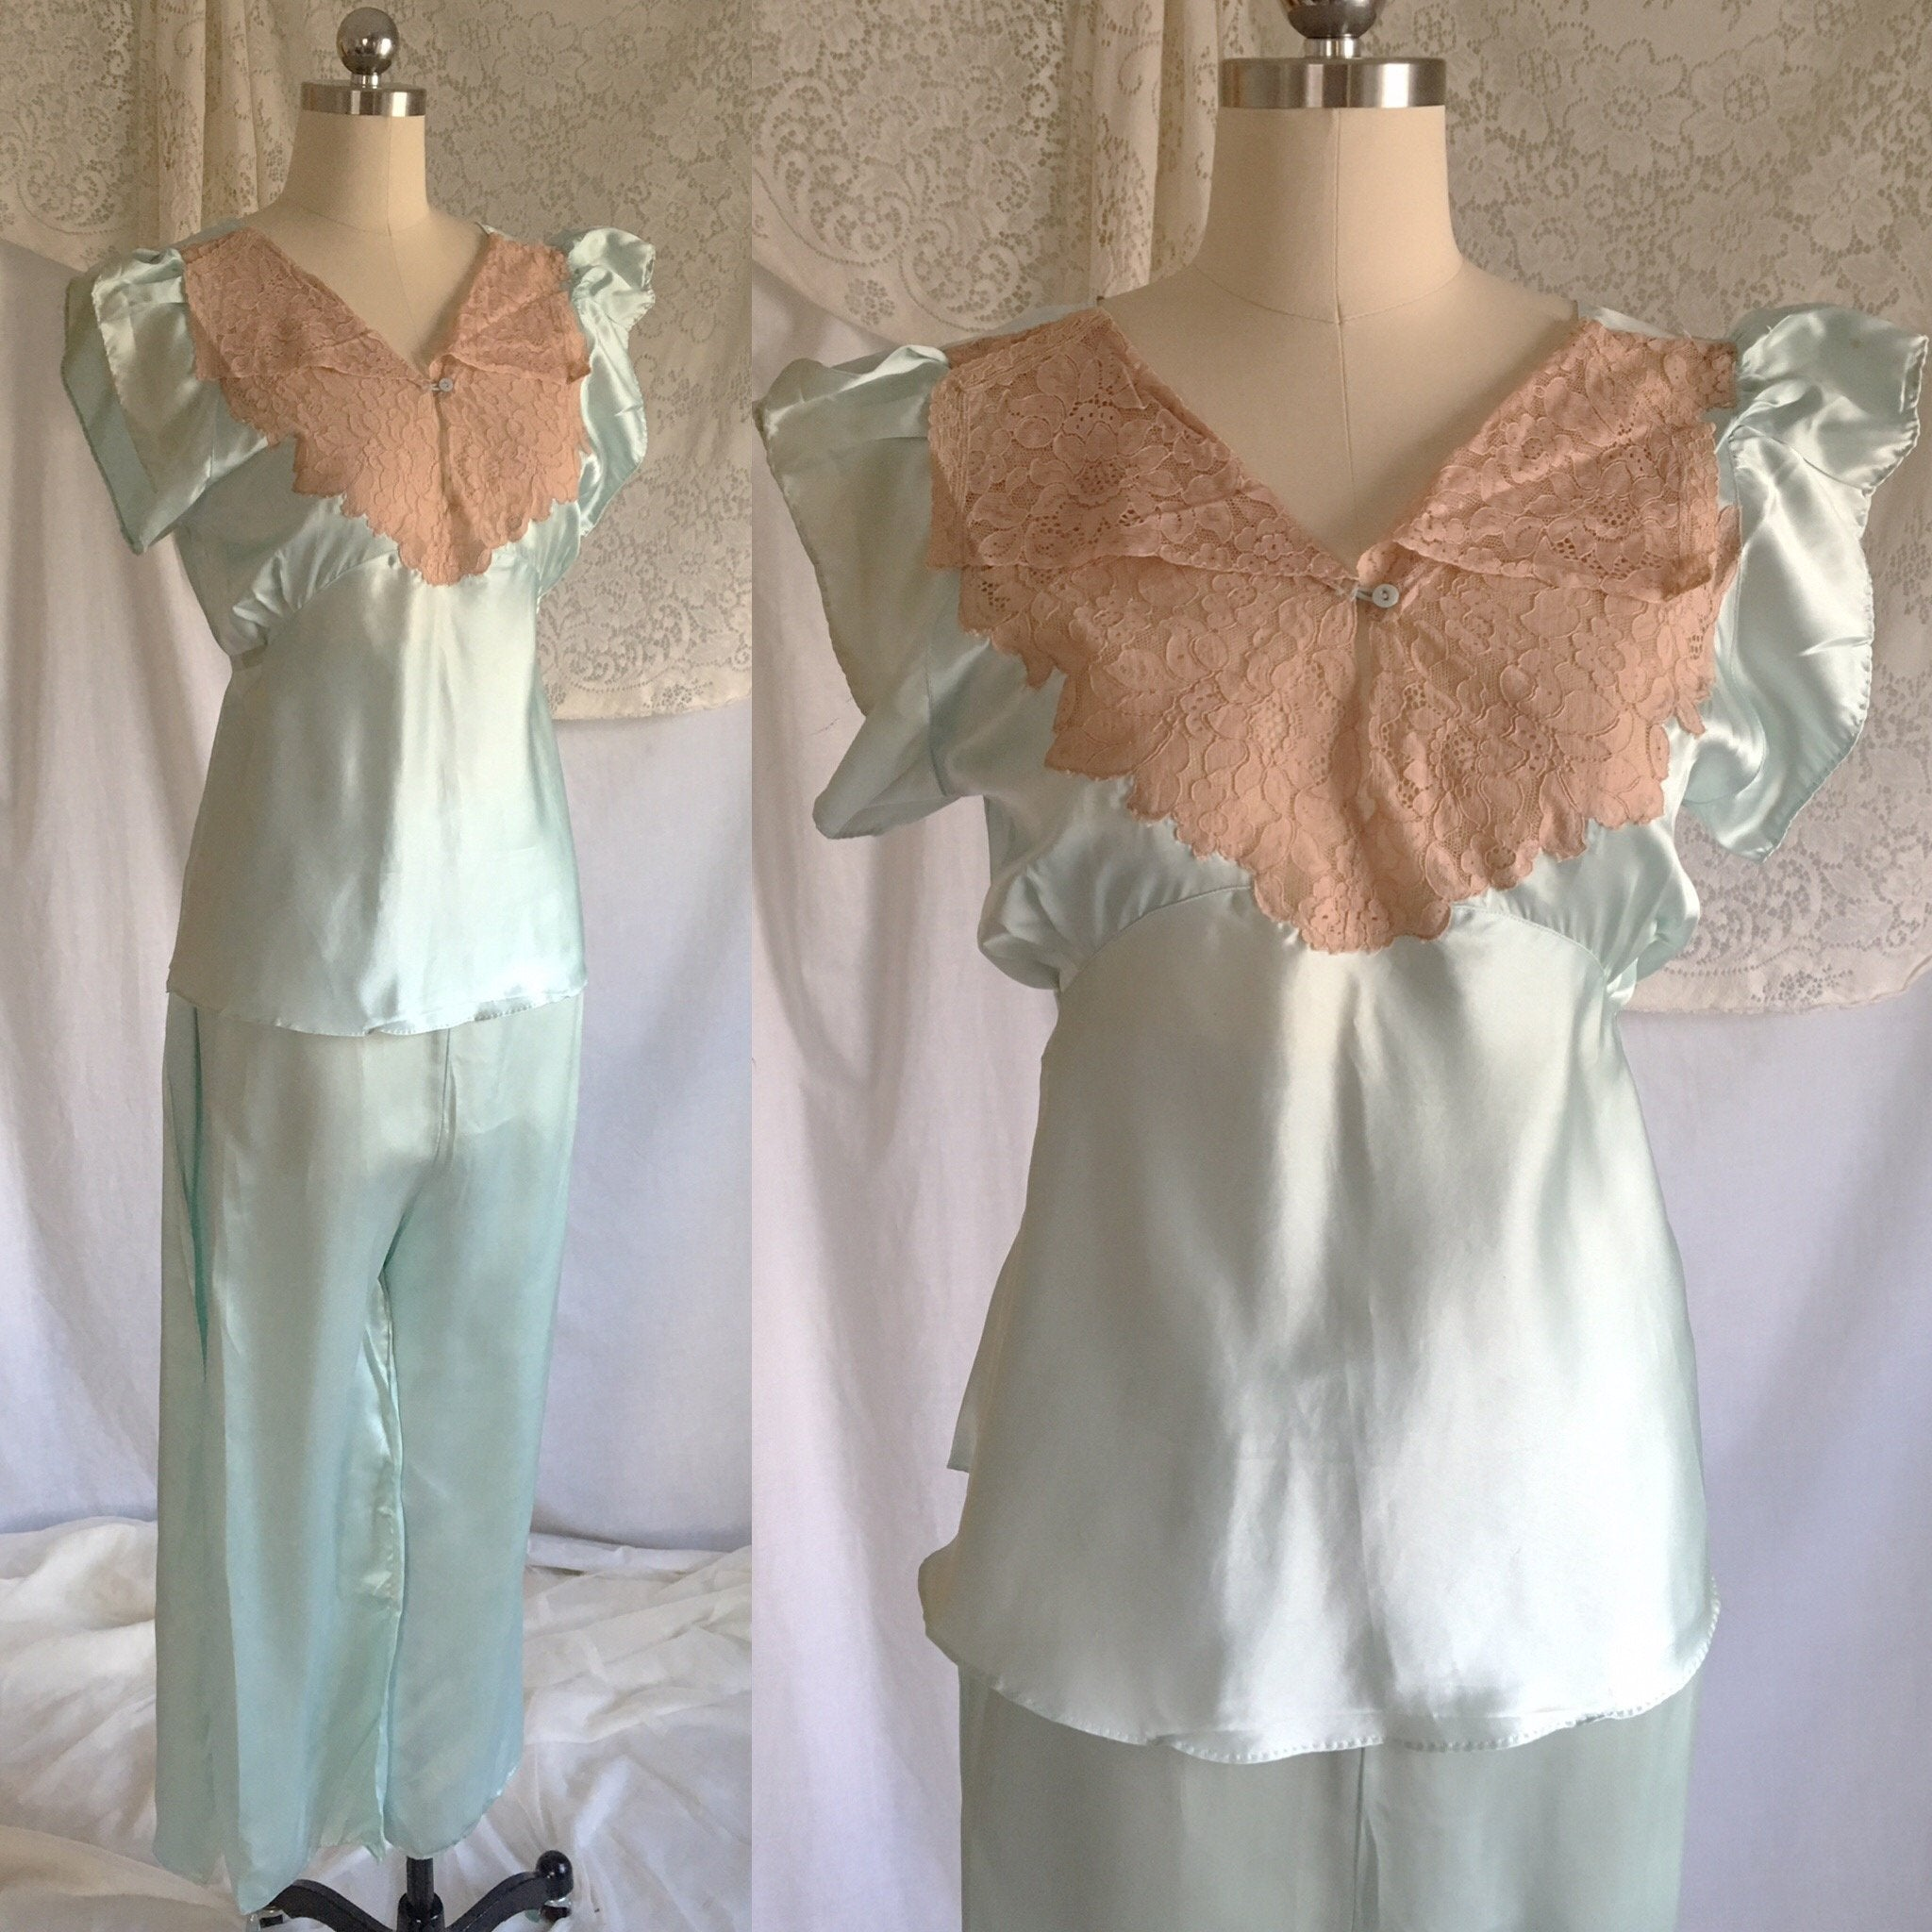 Vintage 1930's Pajama Set | Icy Teal Blue Silk with Alençon Lace | New with Tags | Size LG - Daggers & Dames